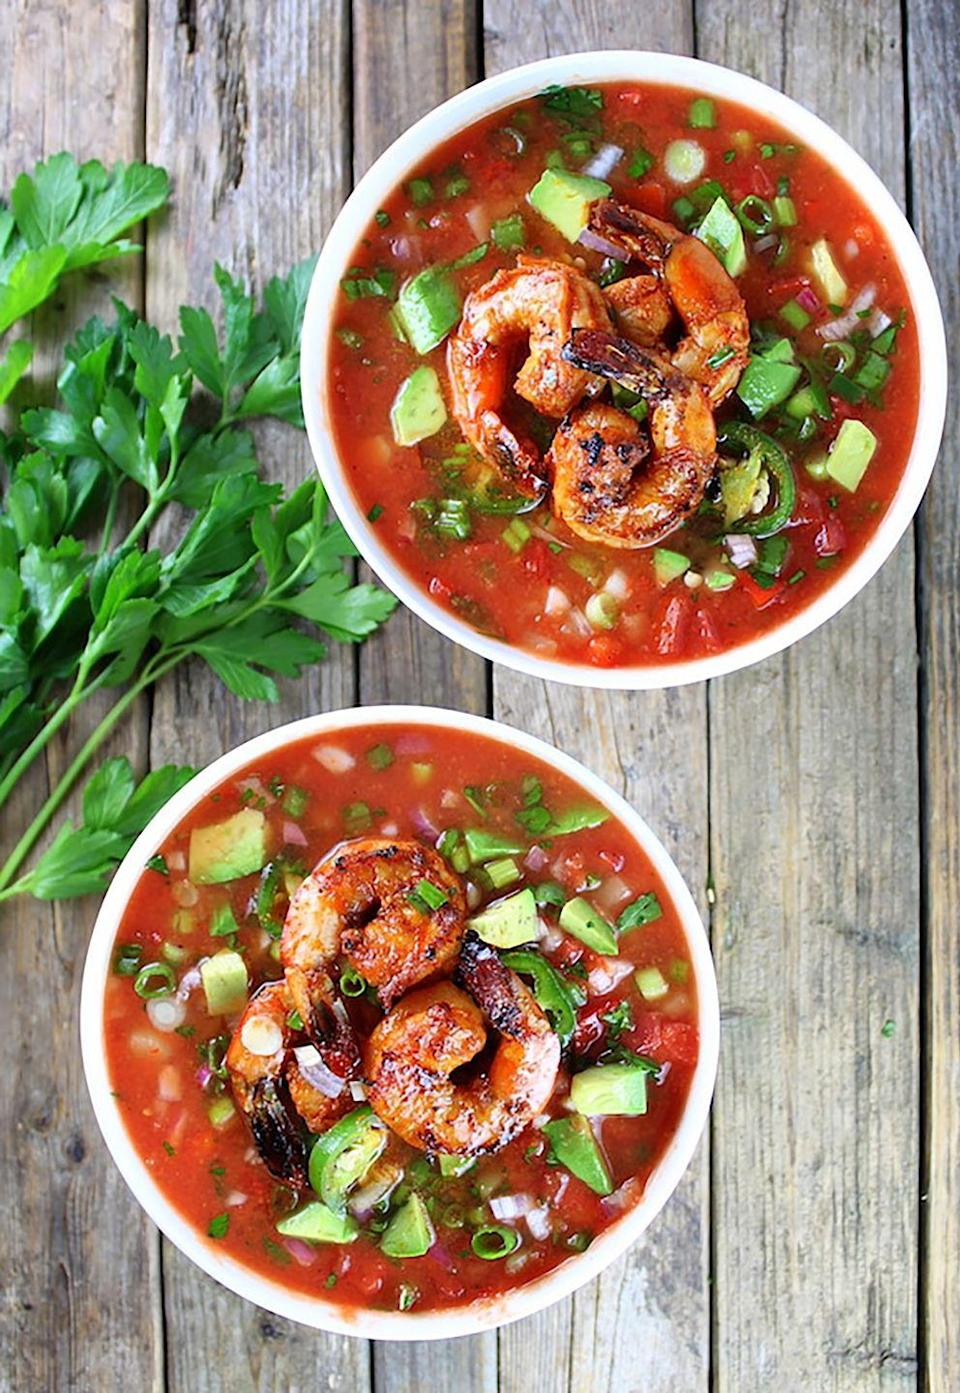 """<p>Enjoy the ultimate tastes of summer with this soup recipe. An added bonus: It's dairy-free <em>and</em> low-carb! </p><p><strong>Get the recipe at <a href=""""https://tasteandsee.com/classic-gazpacho-with-spicy-grilled-shrimp-recipe"""" rel=""""nofollow noopener"""" target=""""_blank"""" data-ylk=""""slk:Taste and See"""" class=""""link rapid-noclick-resp"""">Taste and See</a>.</strong></p>"""